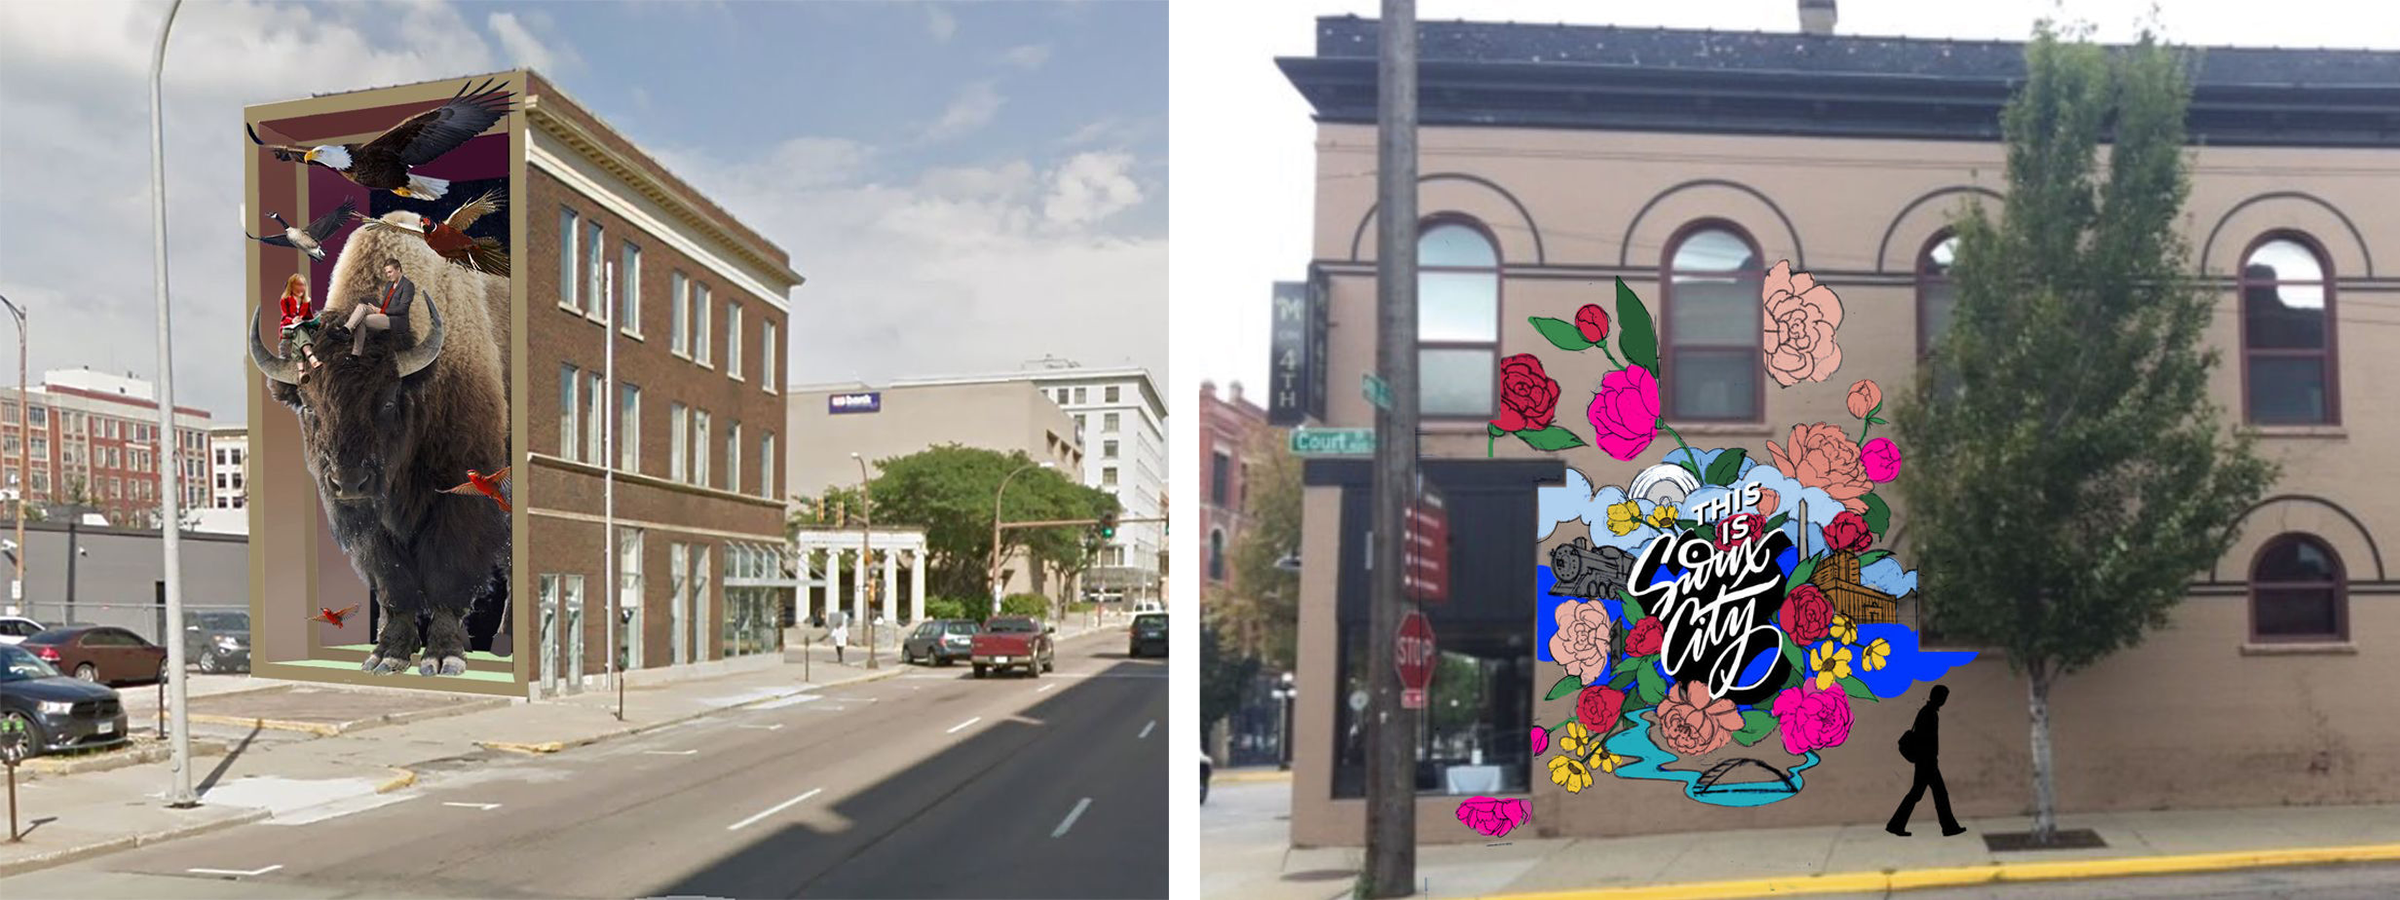 Downtown Partners Welcomes Building Mural Artists